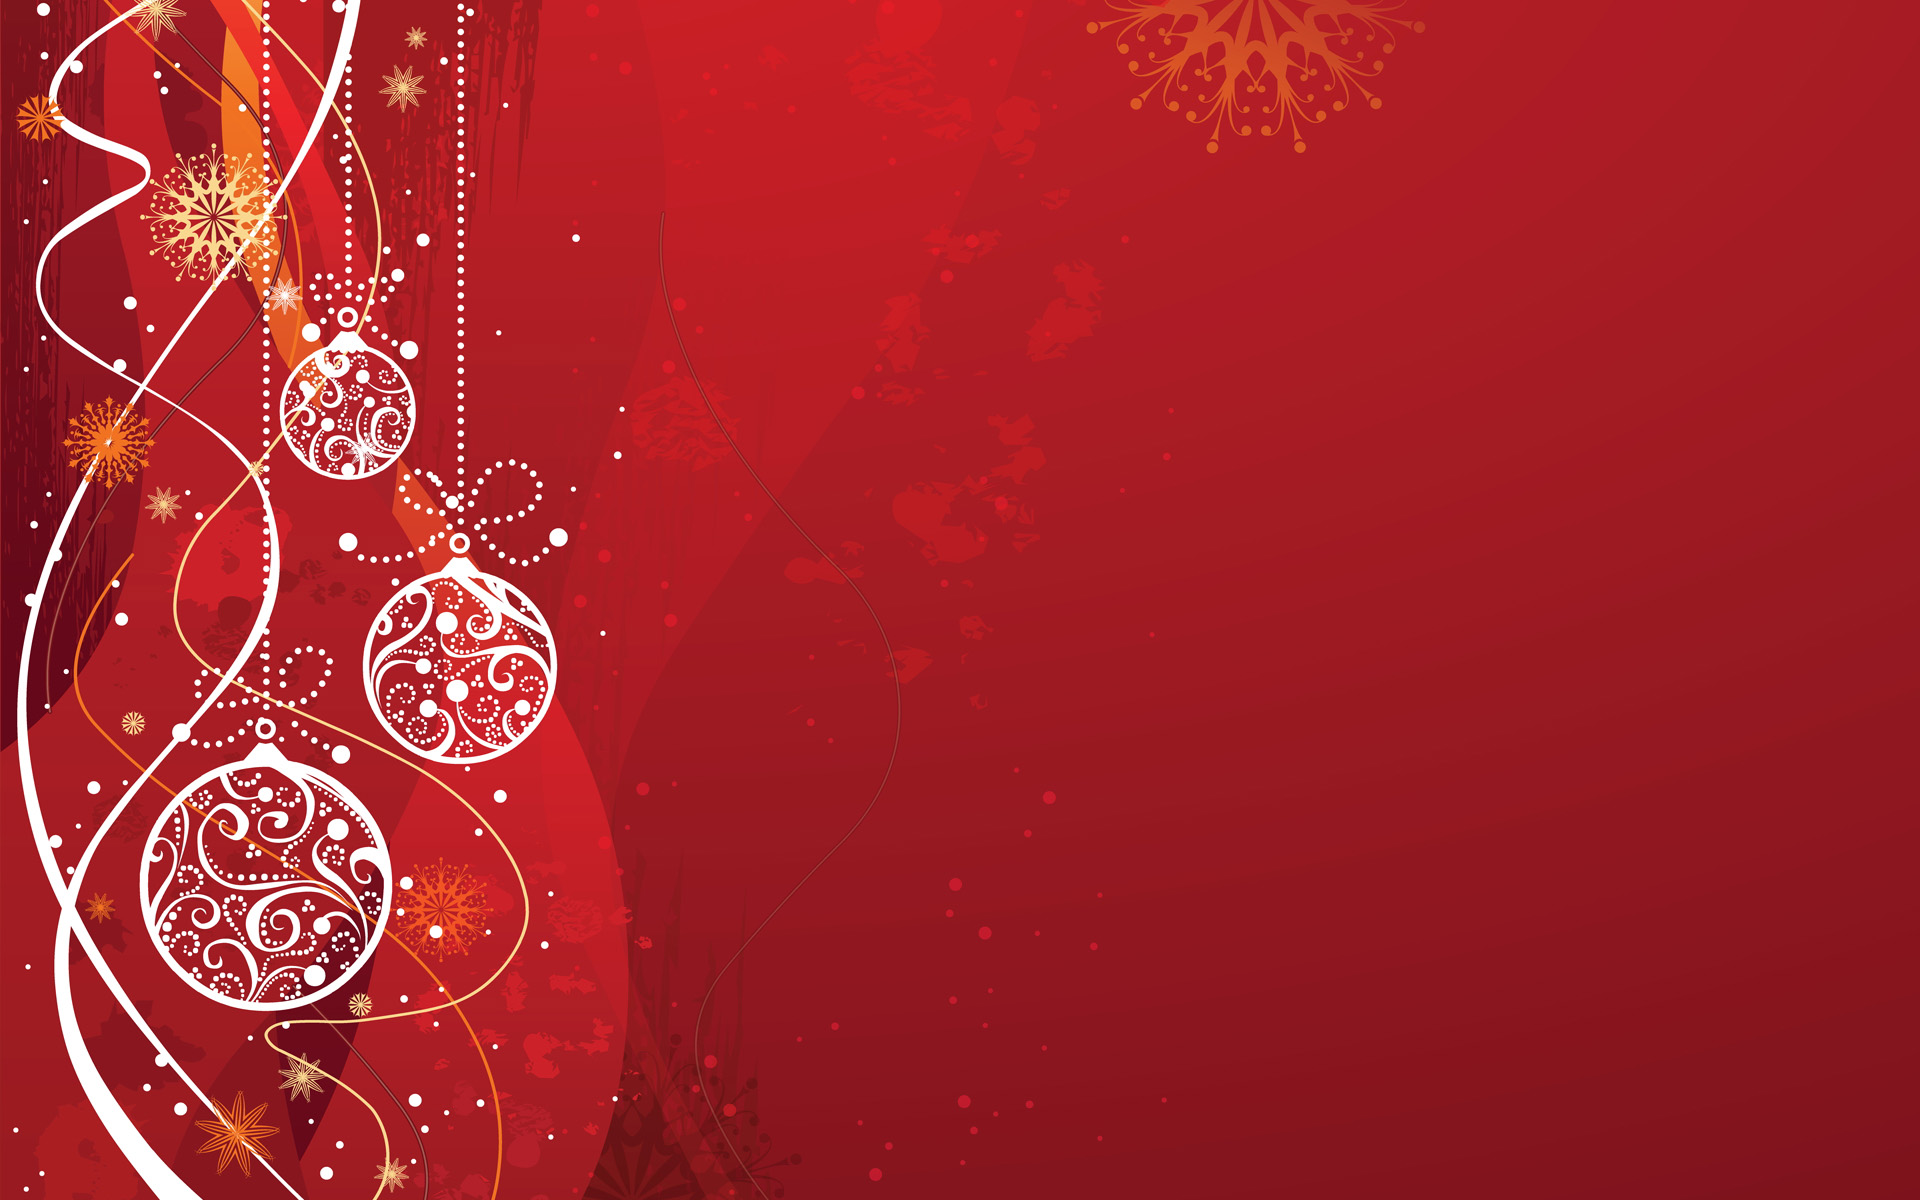 Red Christmas Background Hd Wallpaper